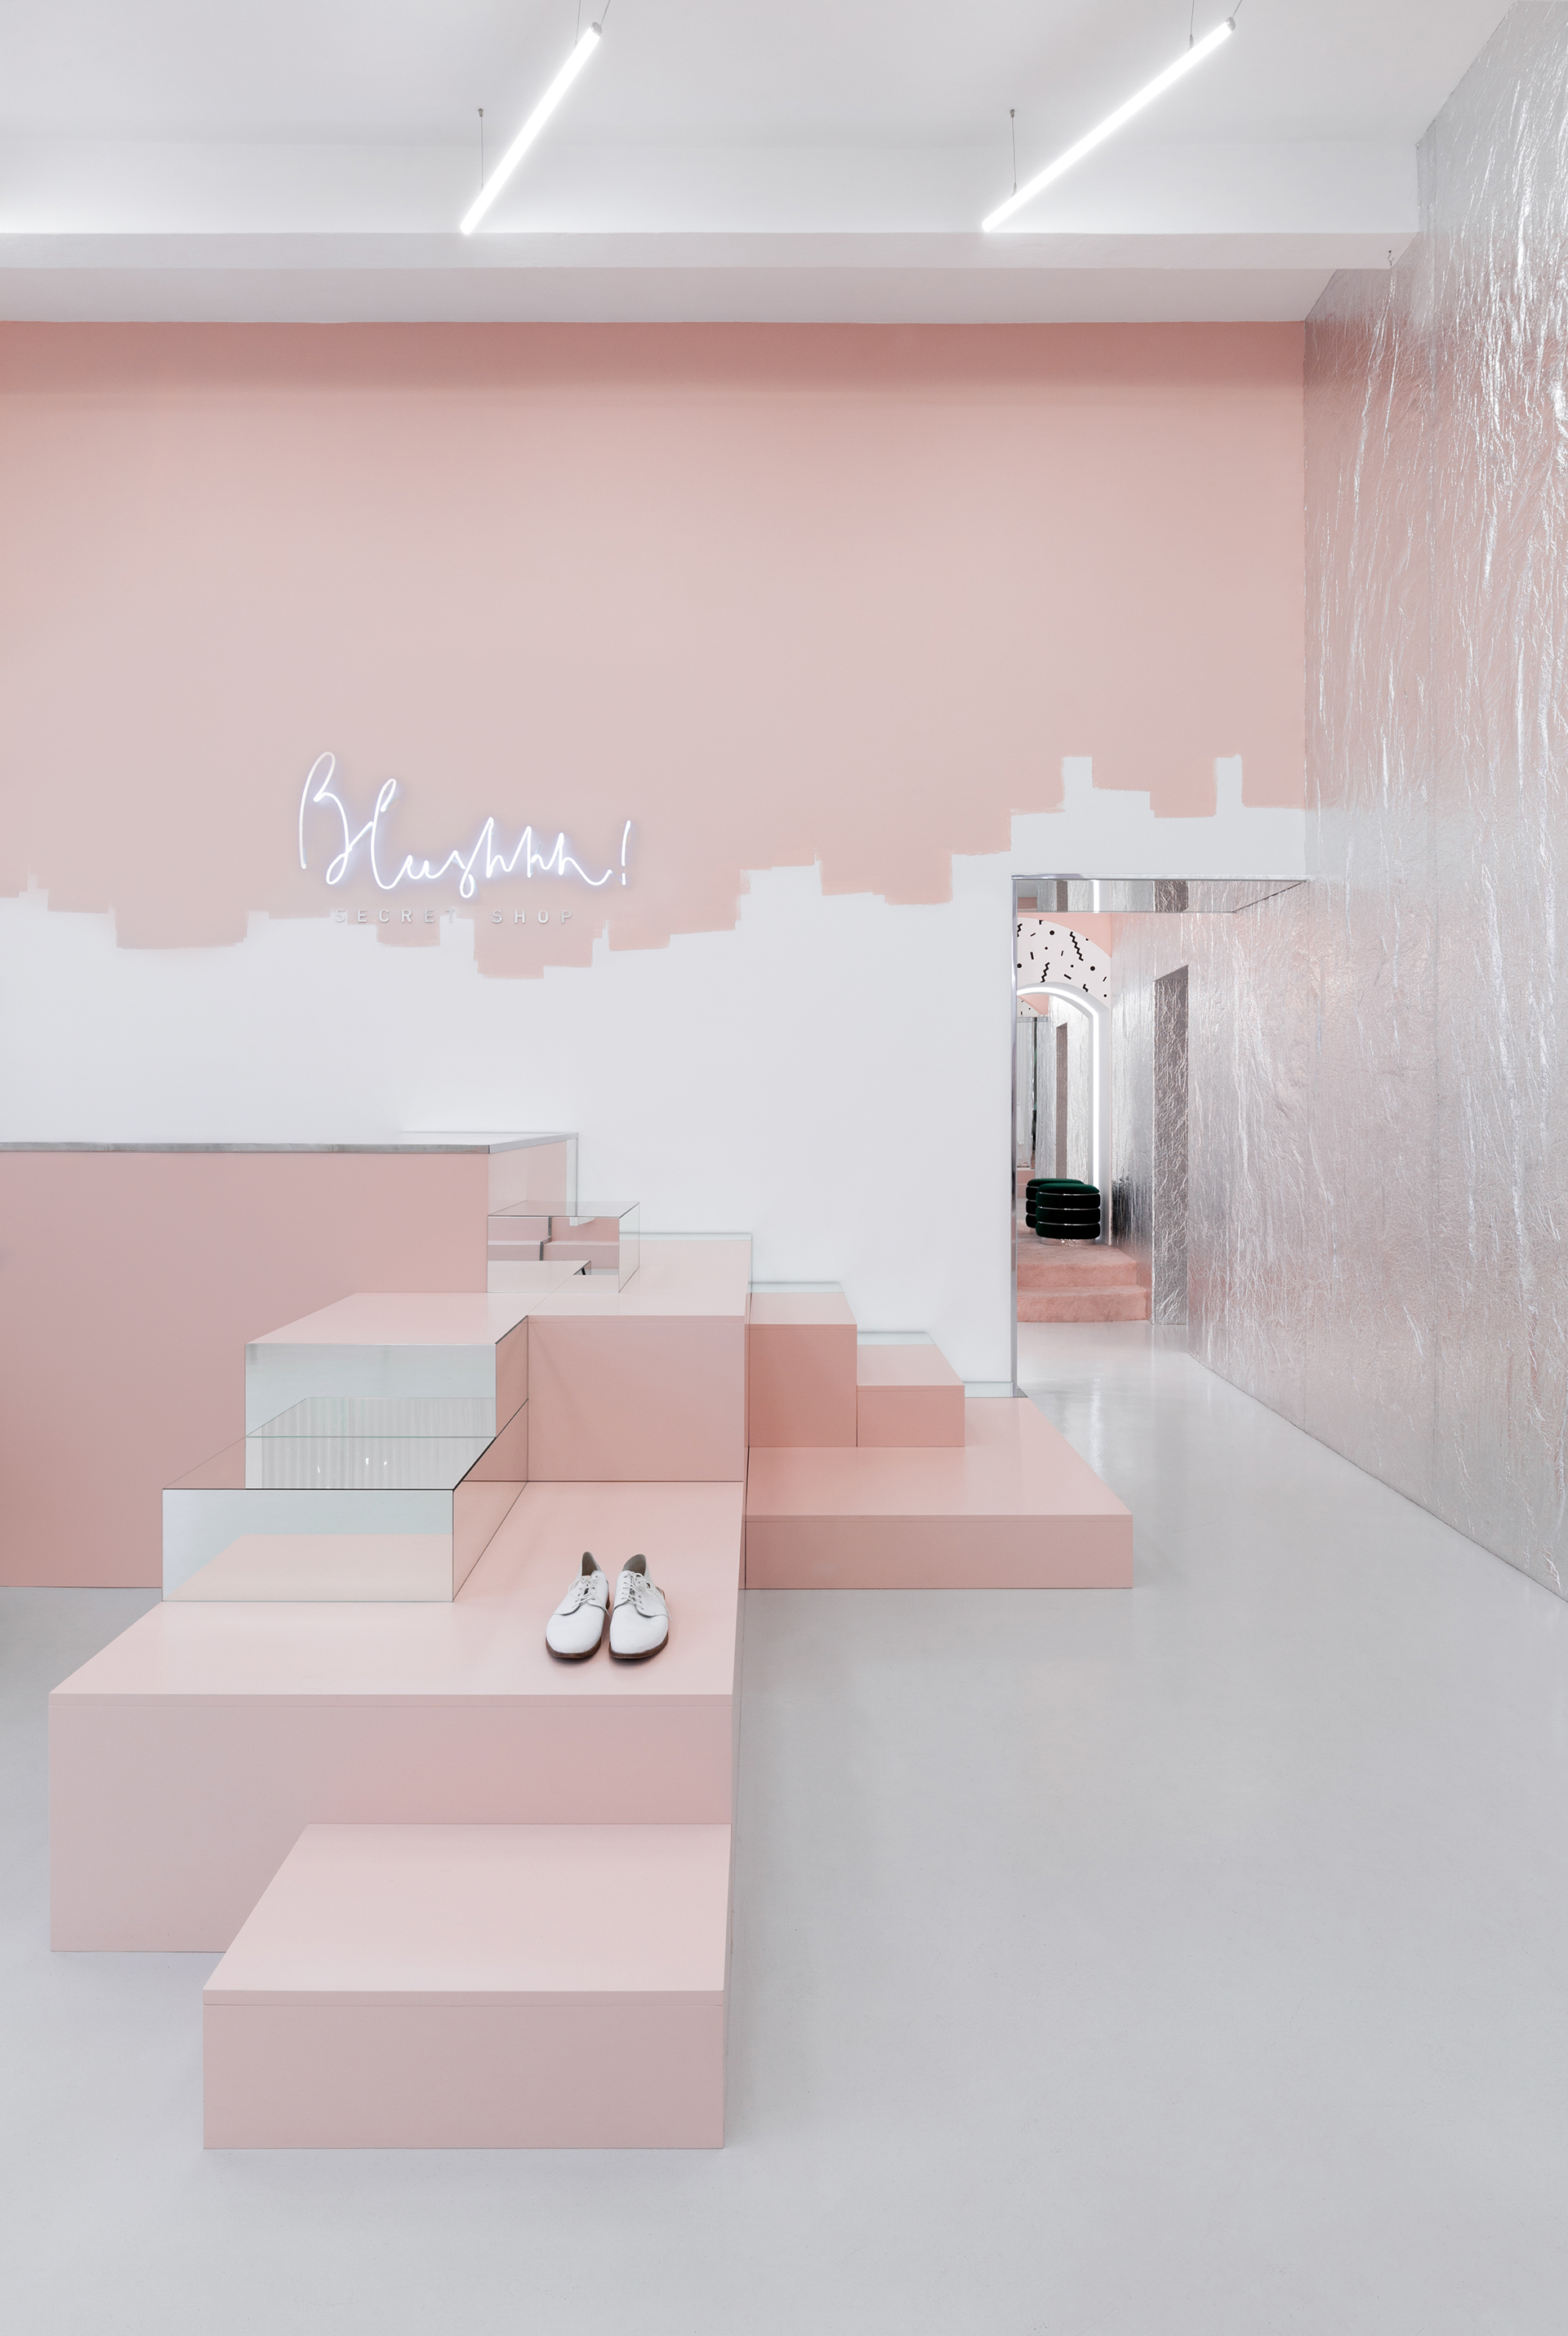 Architecture & Interior Design: Blushhh! Secret Shop